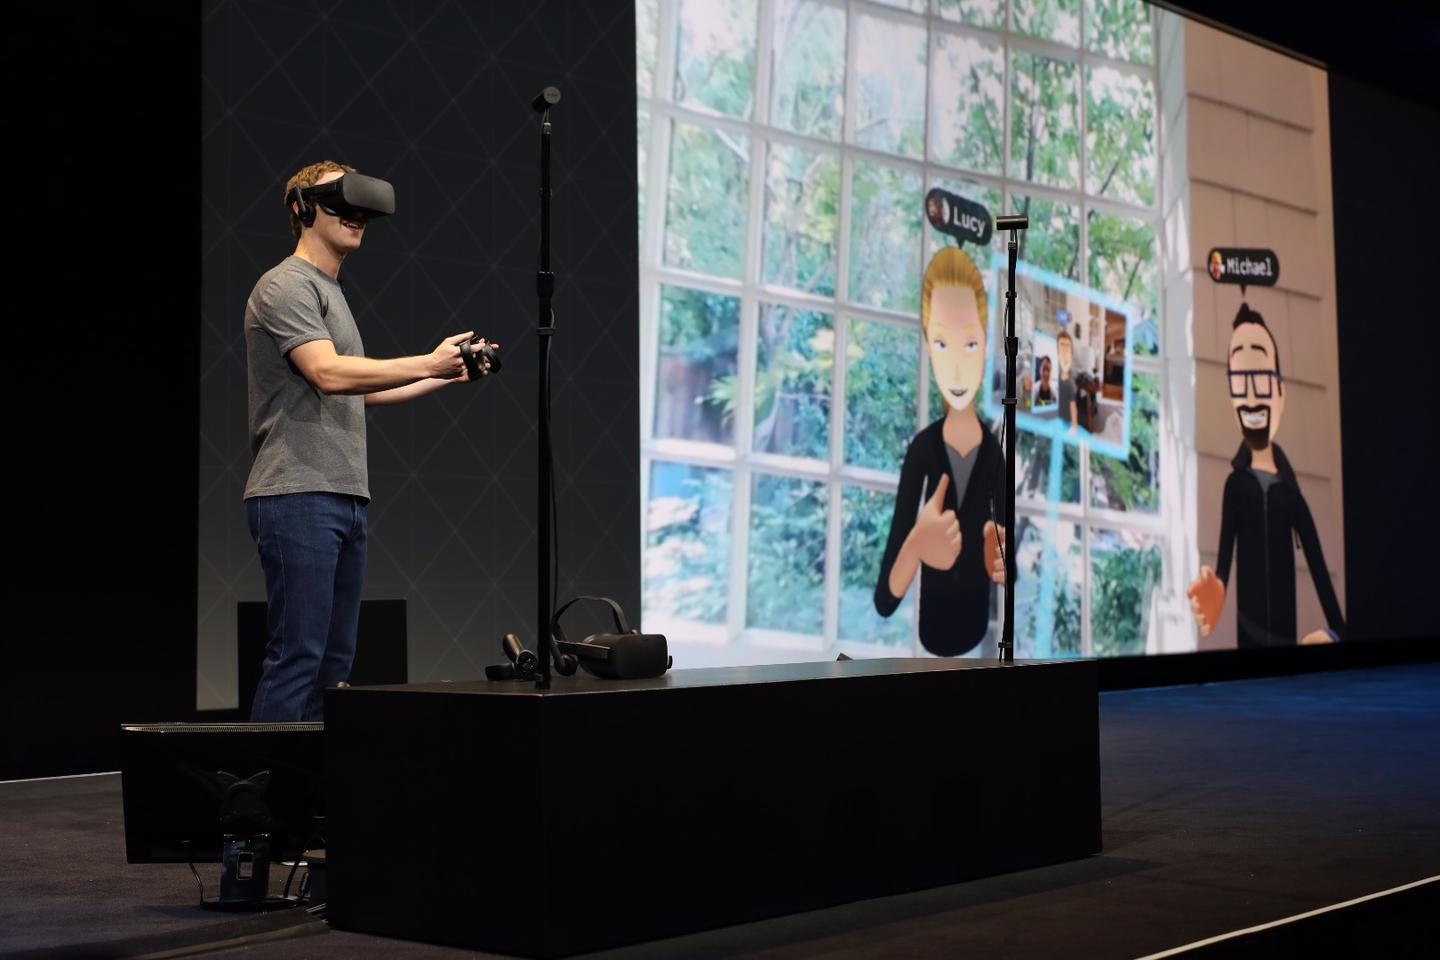 Facebook CEO Mark Zuckerberg performs a live VR demo at Oculus Connect 2016